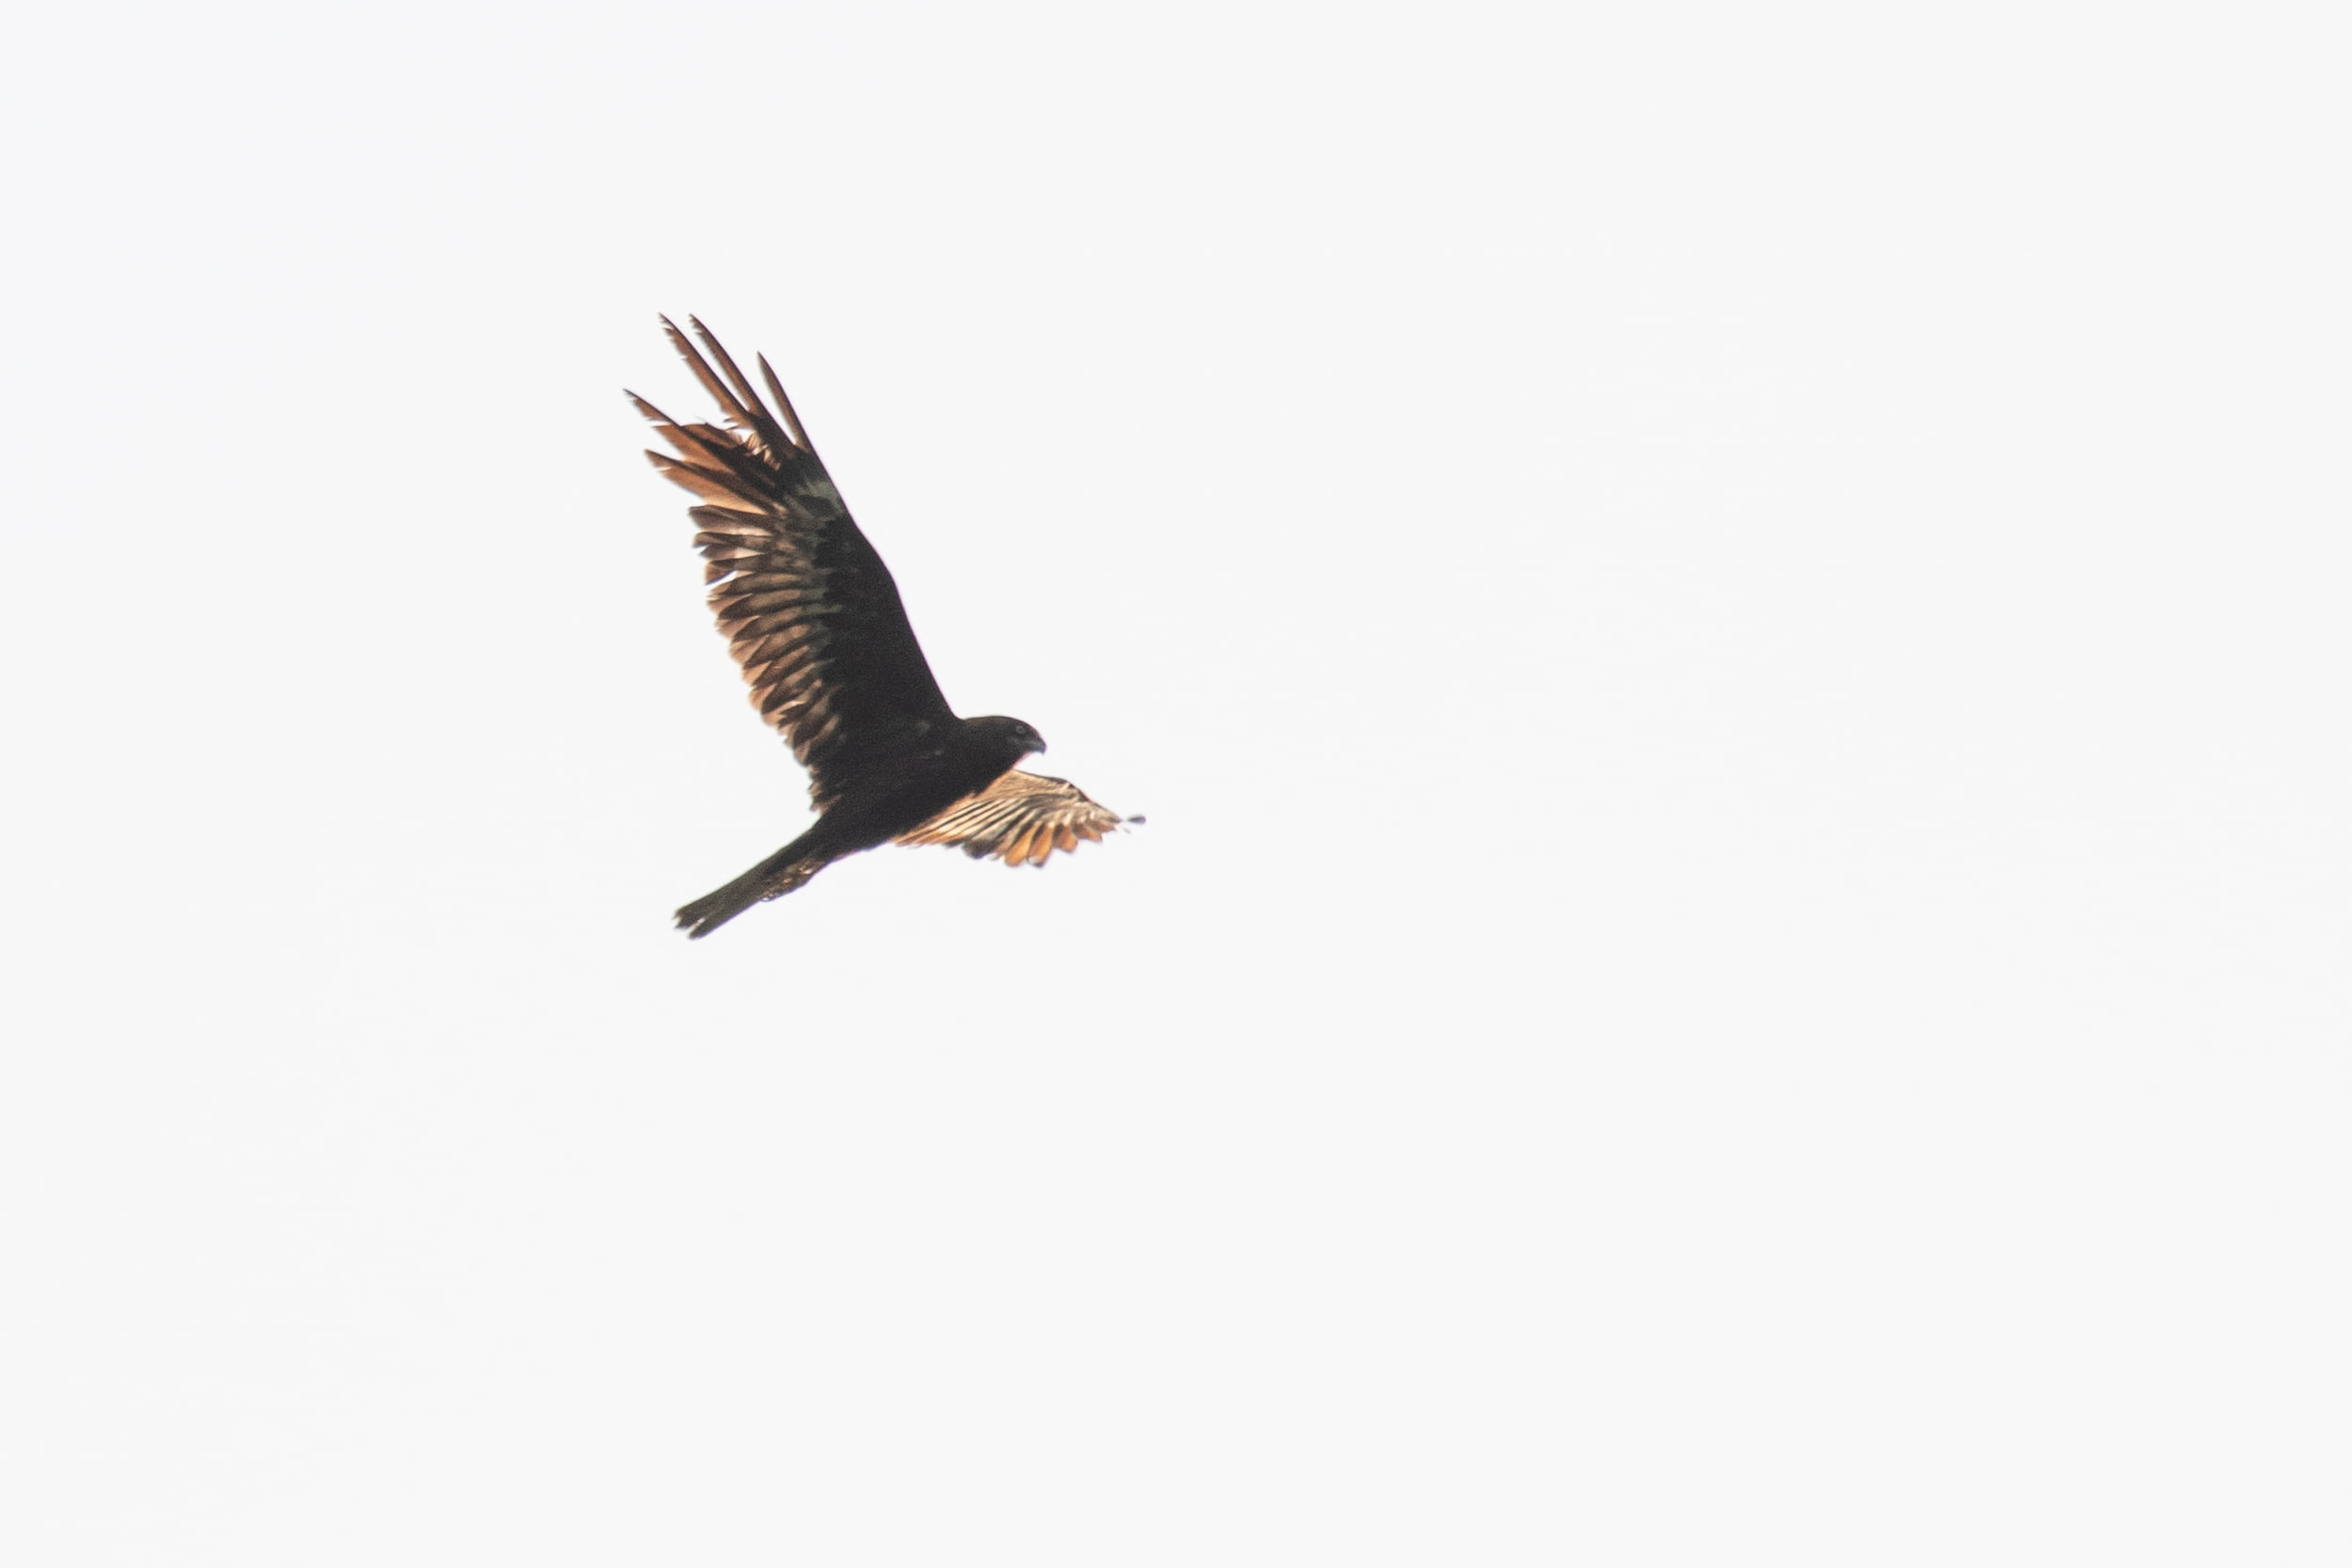 August 31st.  Adult male Marsh Harrier of the striking dark morph, presumably shot in the right wing. Notice the very dark body and underwing coverts, the light patch at the base of the secondaries and primaries, causing a strong contrast between the light patch and the dark trailing edge of the wing.